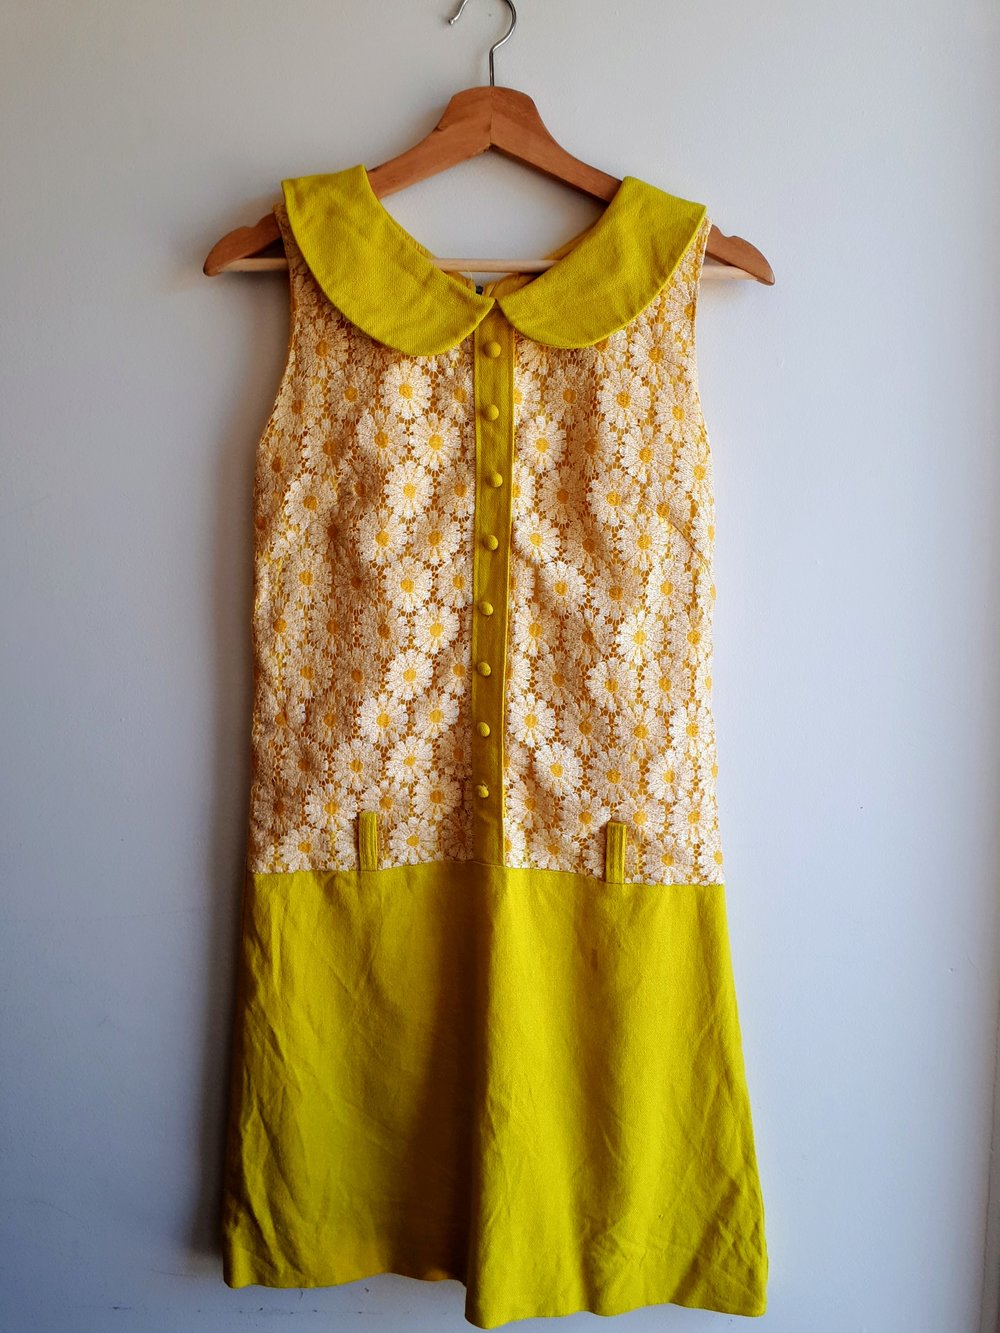 Zazzie dress; Size S, $26